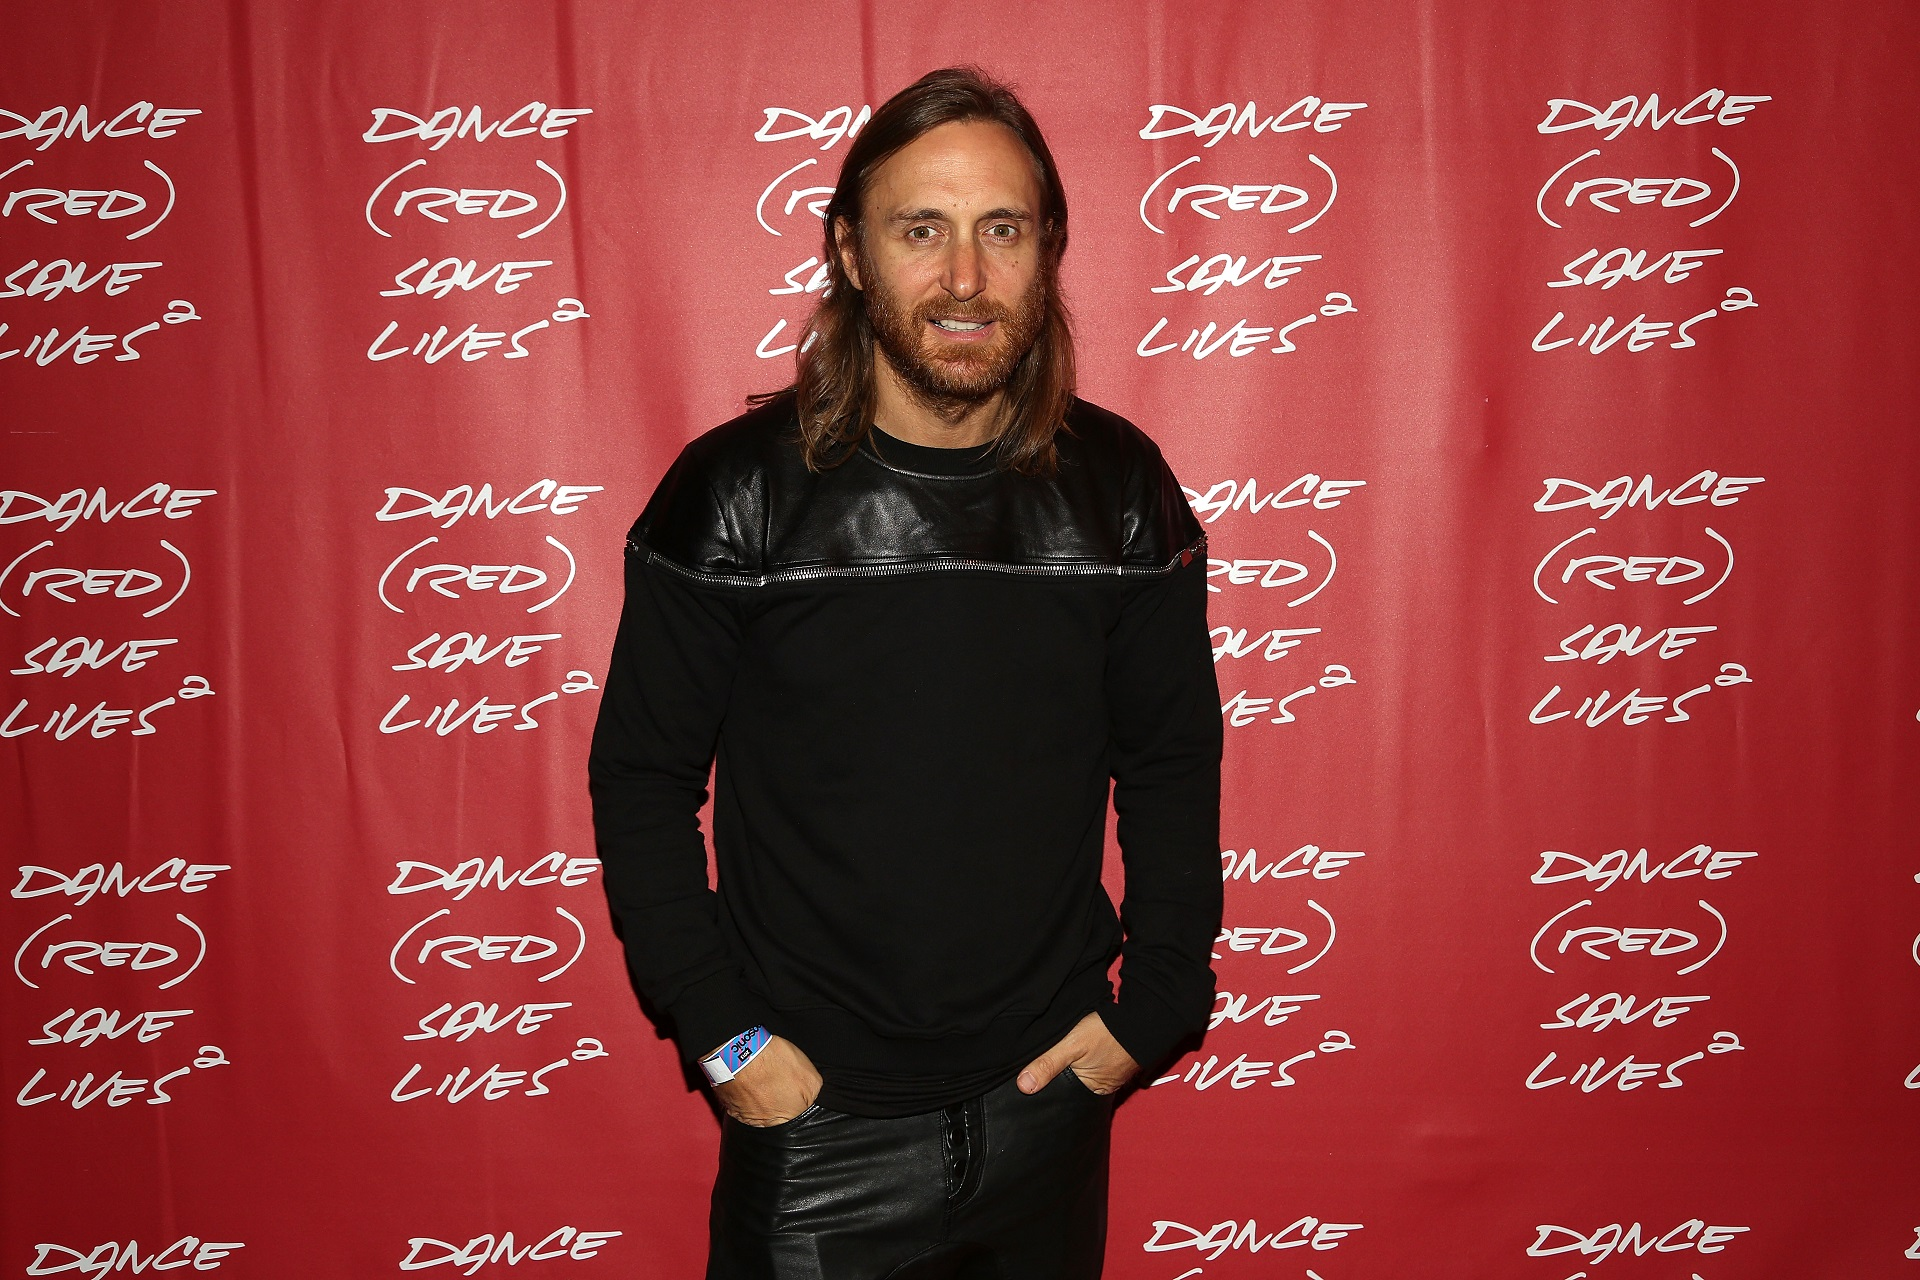 David Guetta - DJ Mix - 22-Oct-2017